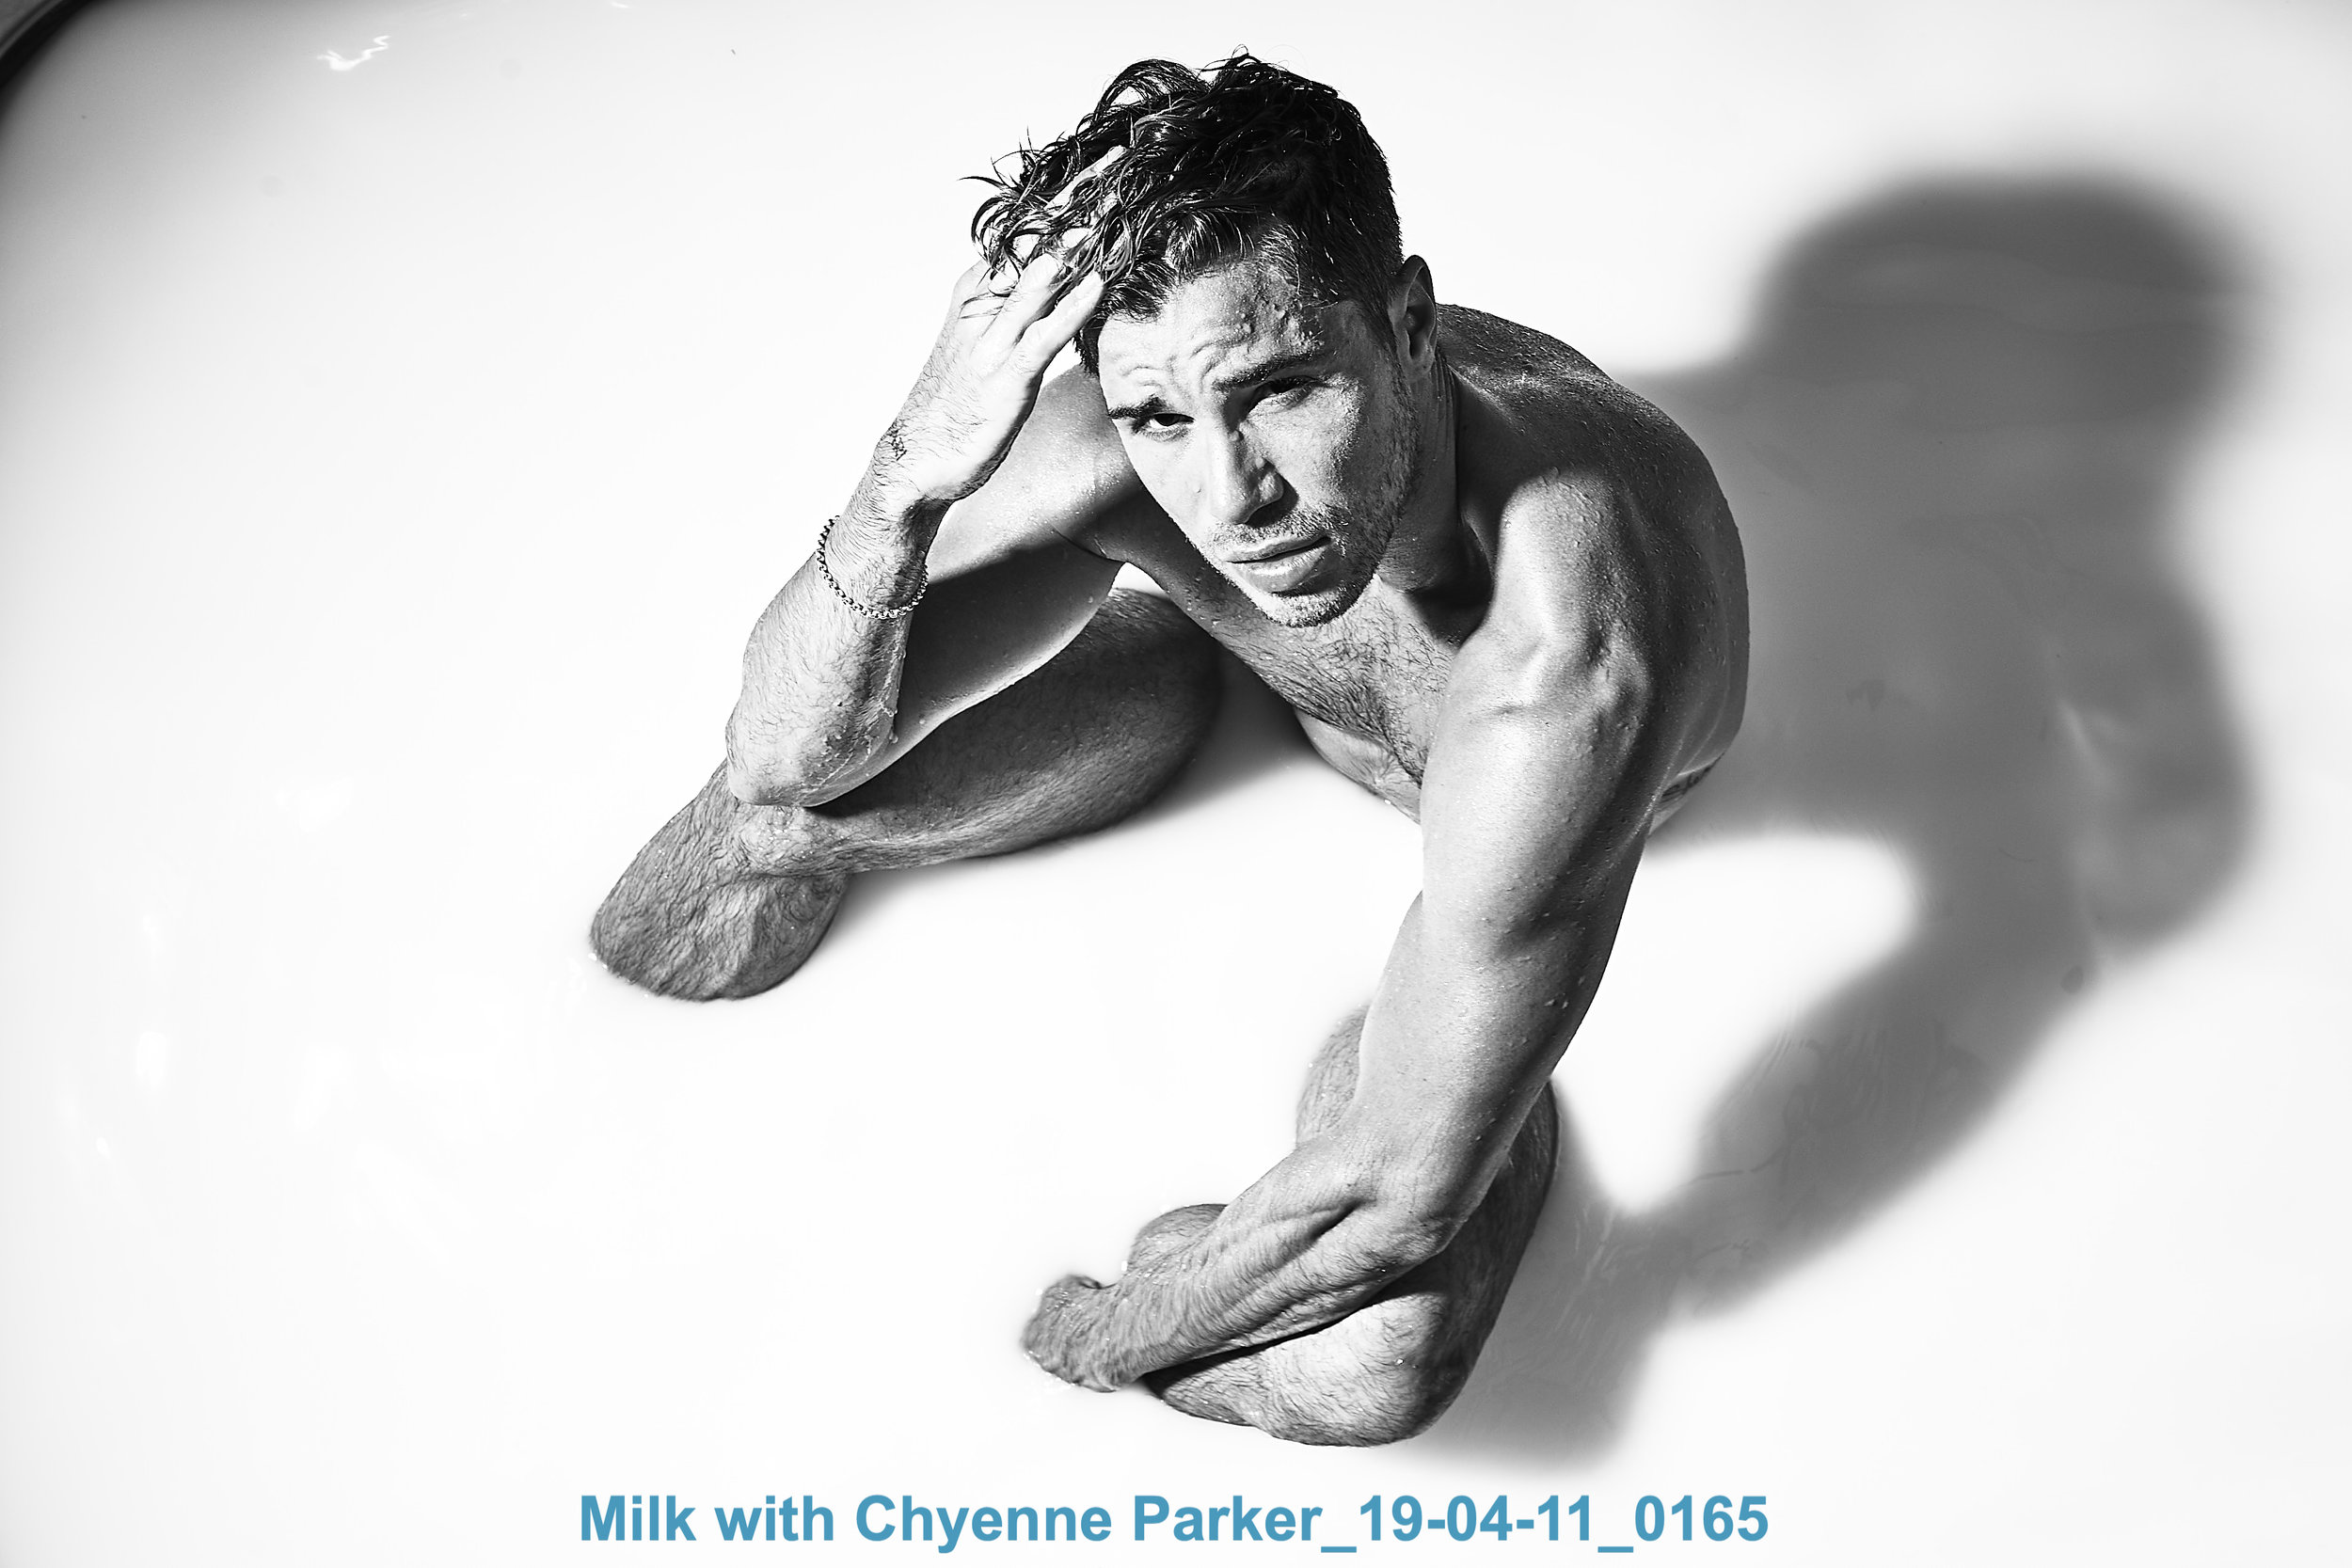 Milk with Chyenne Parker_19-04-11_0165.jpg